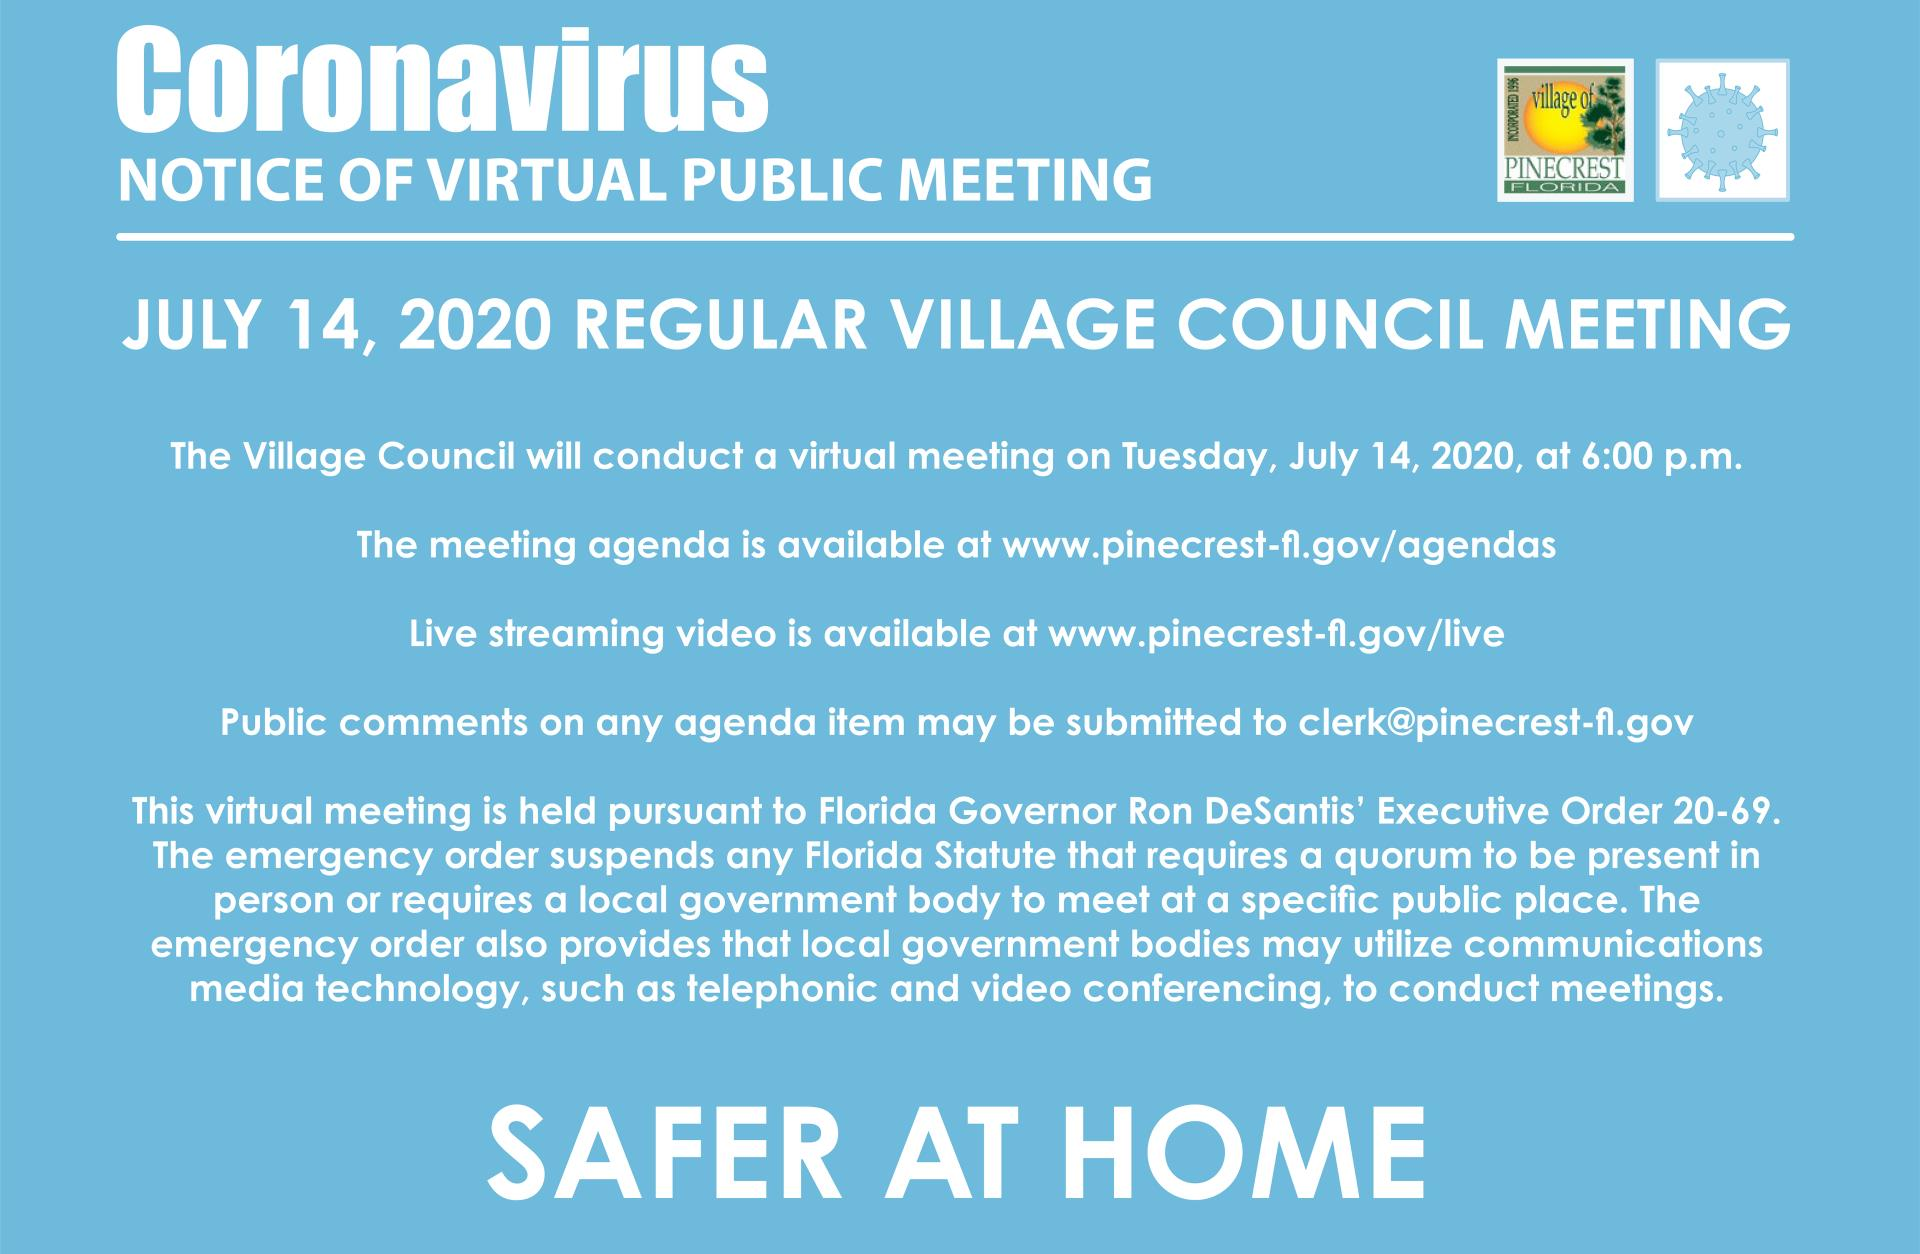 Notice of Virtual Meeting July 14, 2020 6:00 p.m.